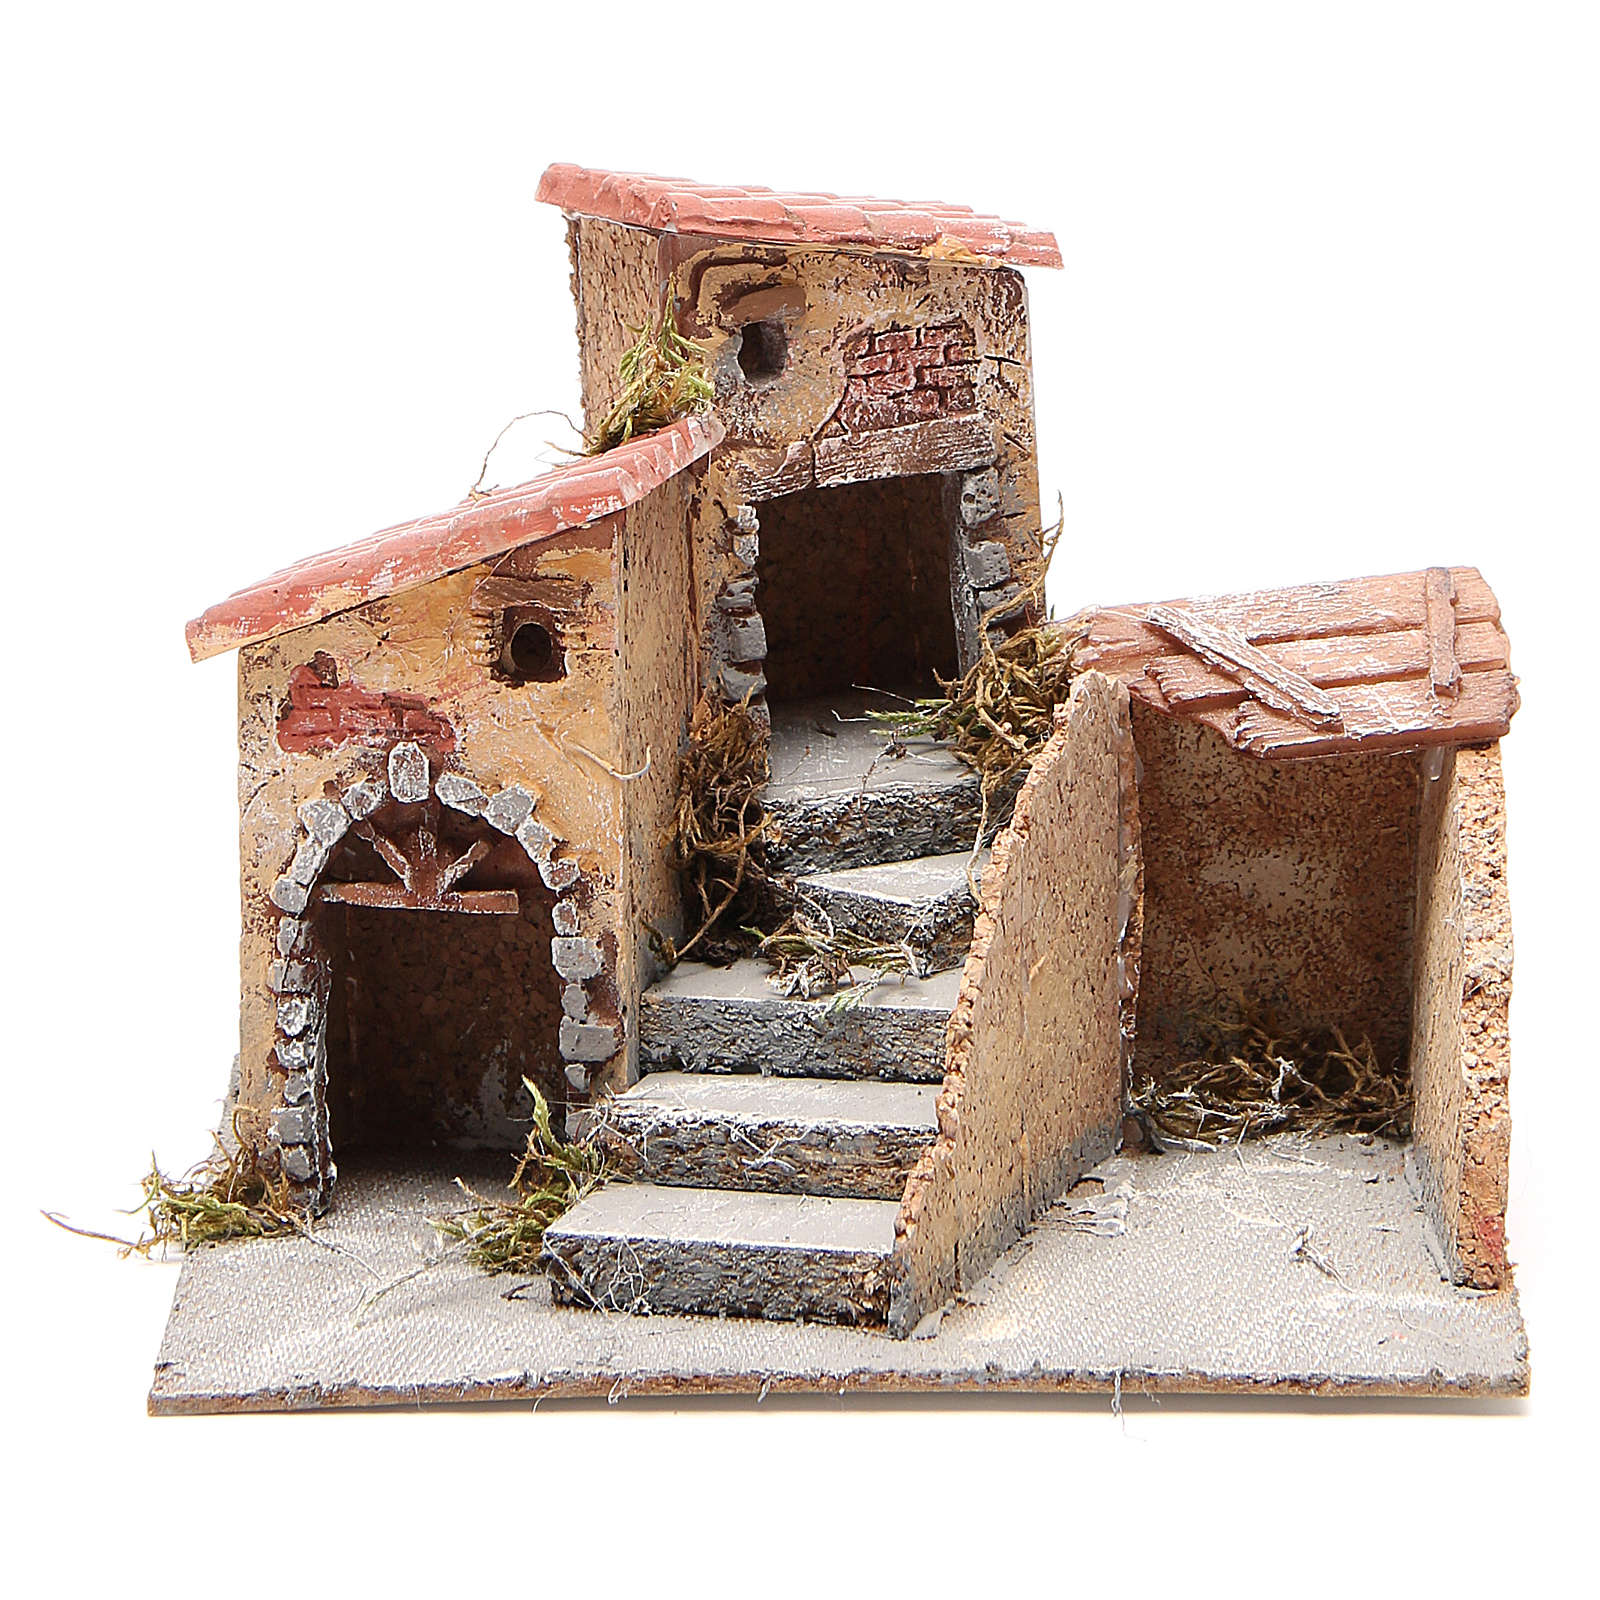 Composition of houses for cork and resin Nativity scene, 19x20x18cm 4